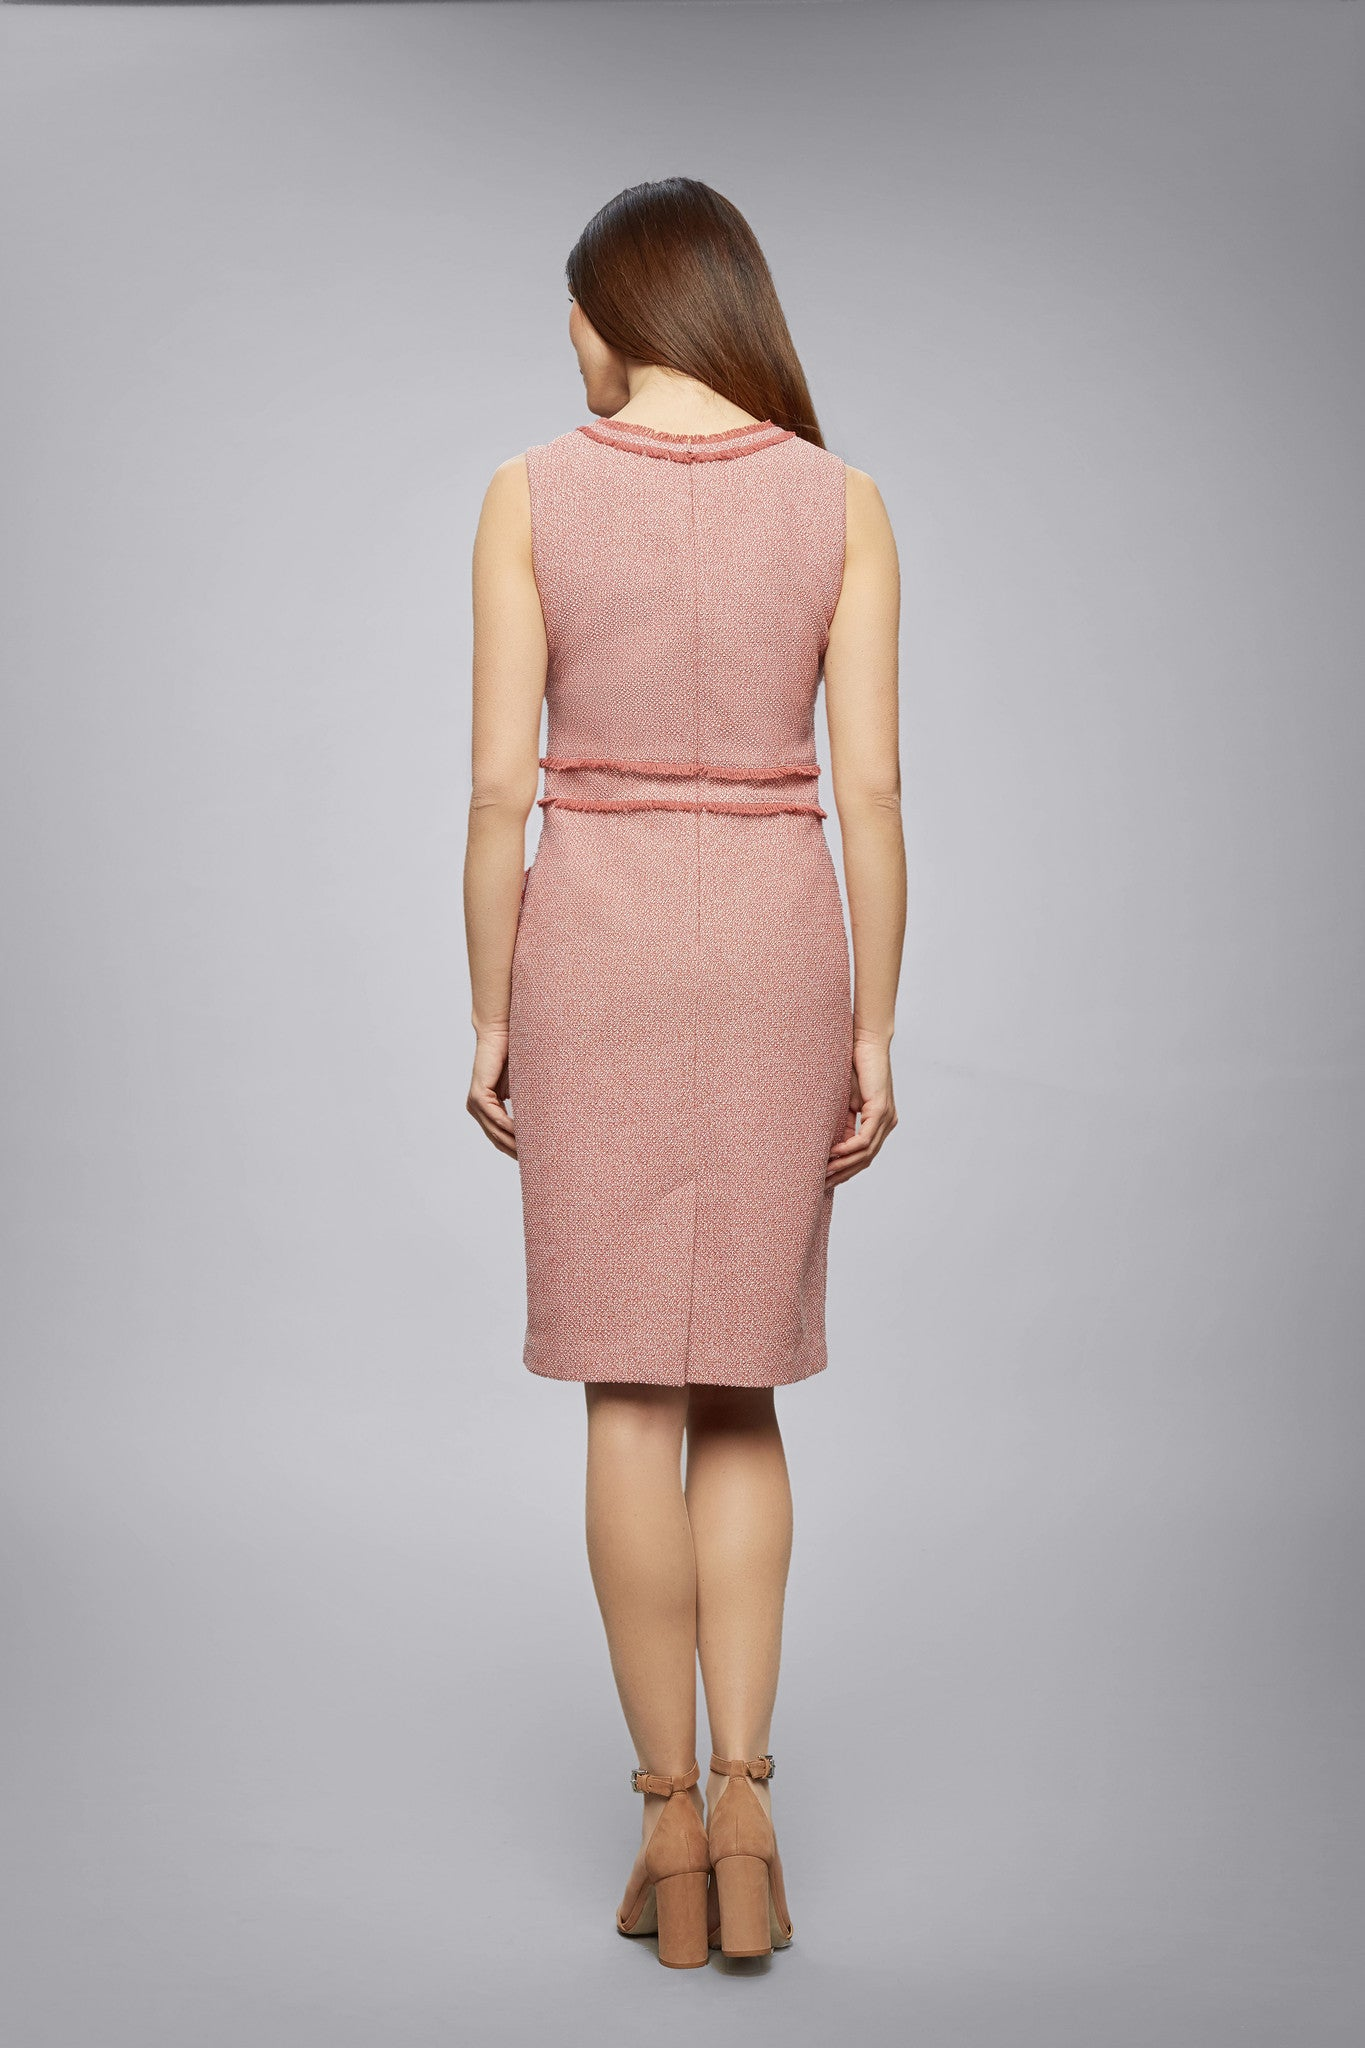 Soft pink cotton tweed dress with fringed detail